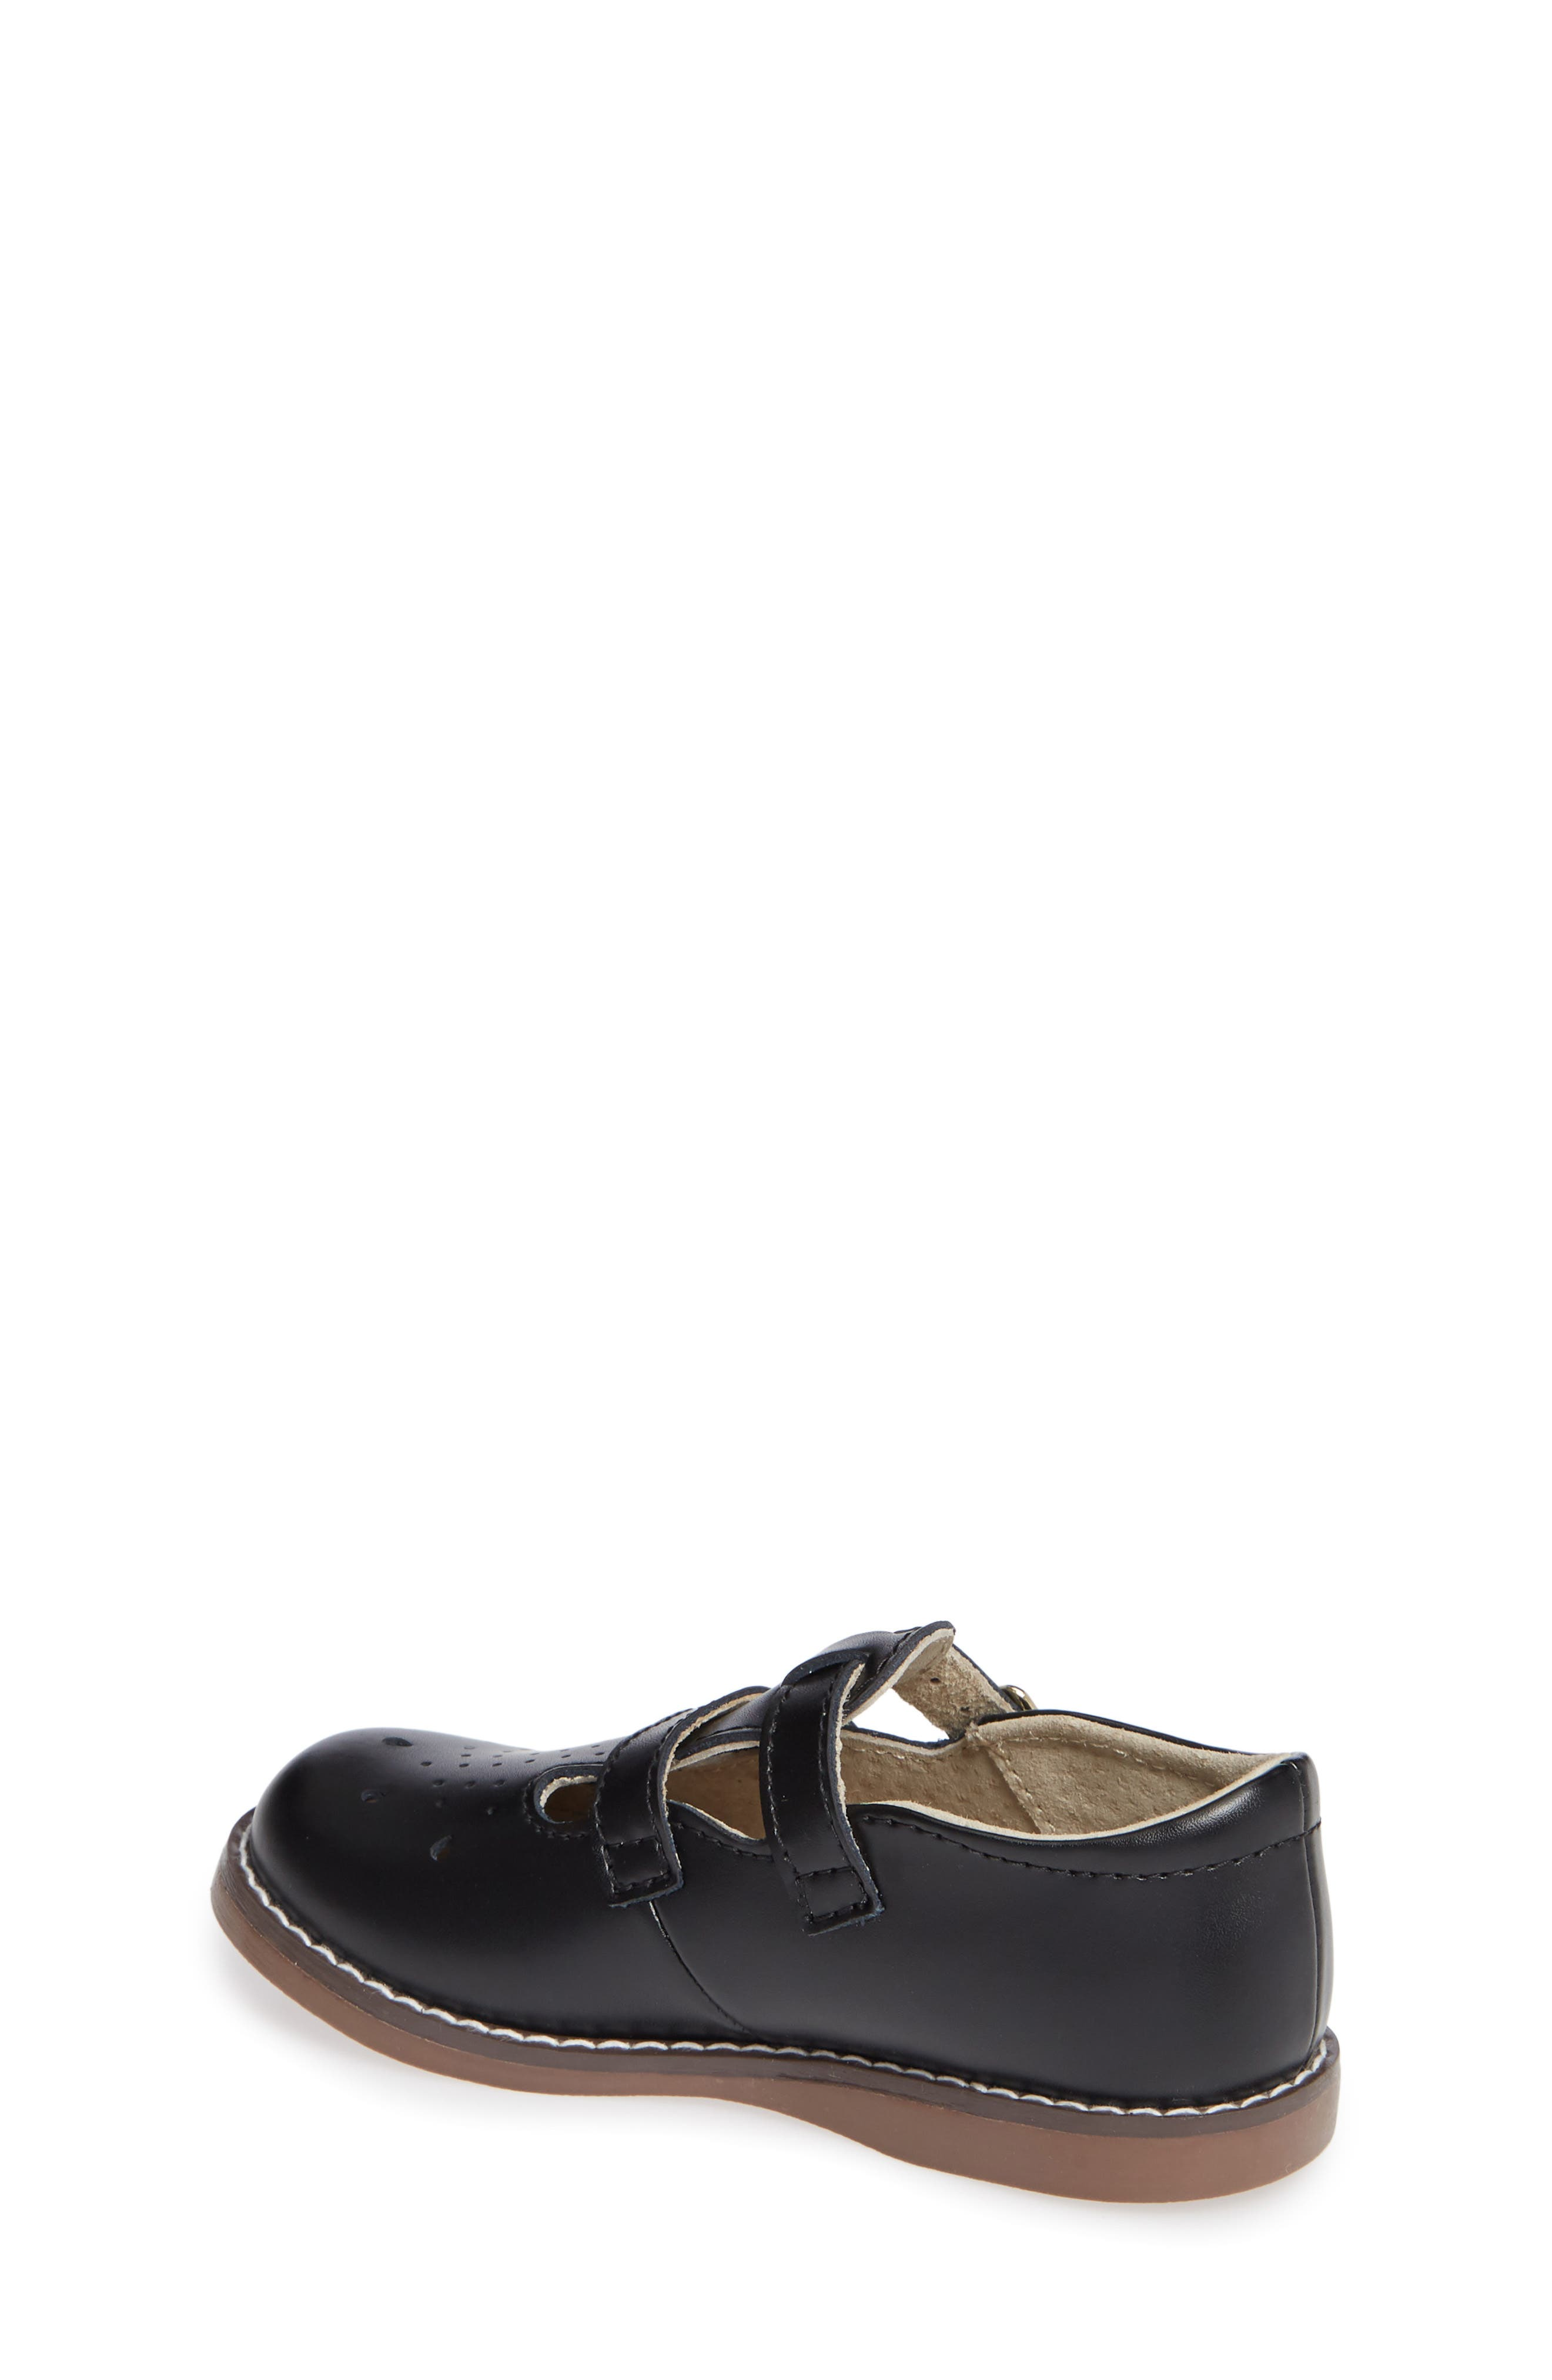 Danielle Double Strap Shoe,                             Alternate thumbnail 2, color,                             BLACK